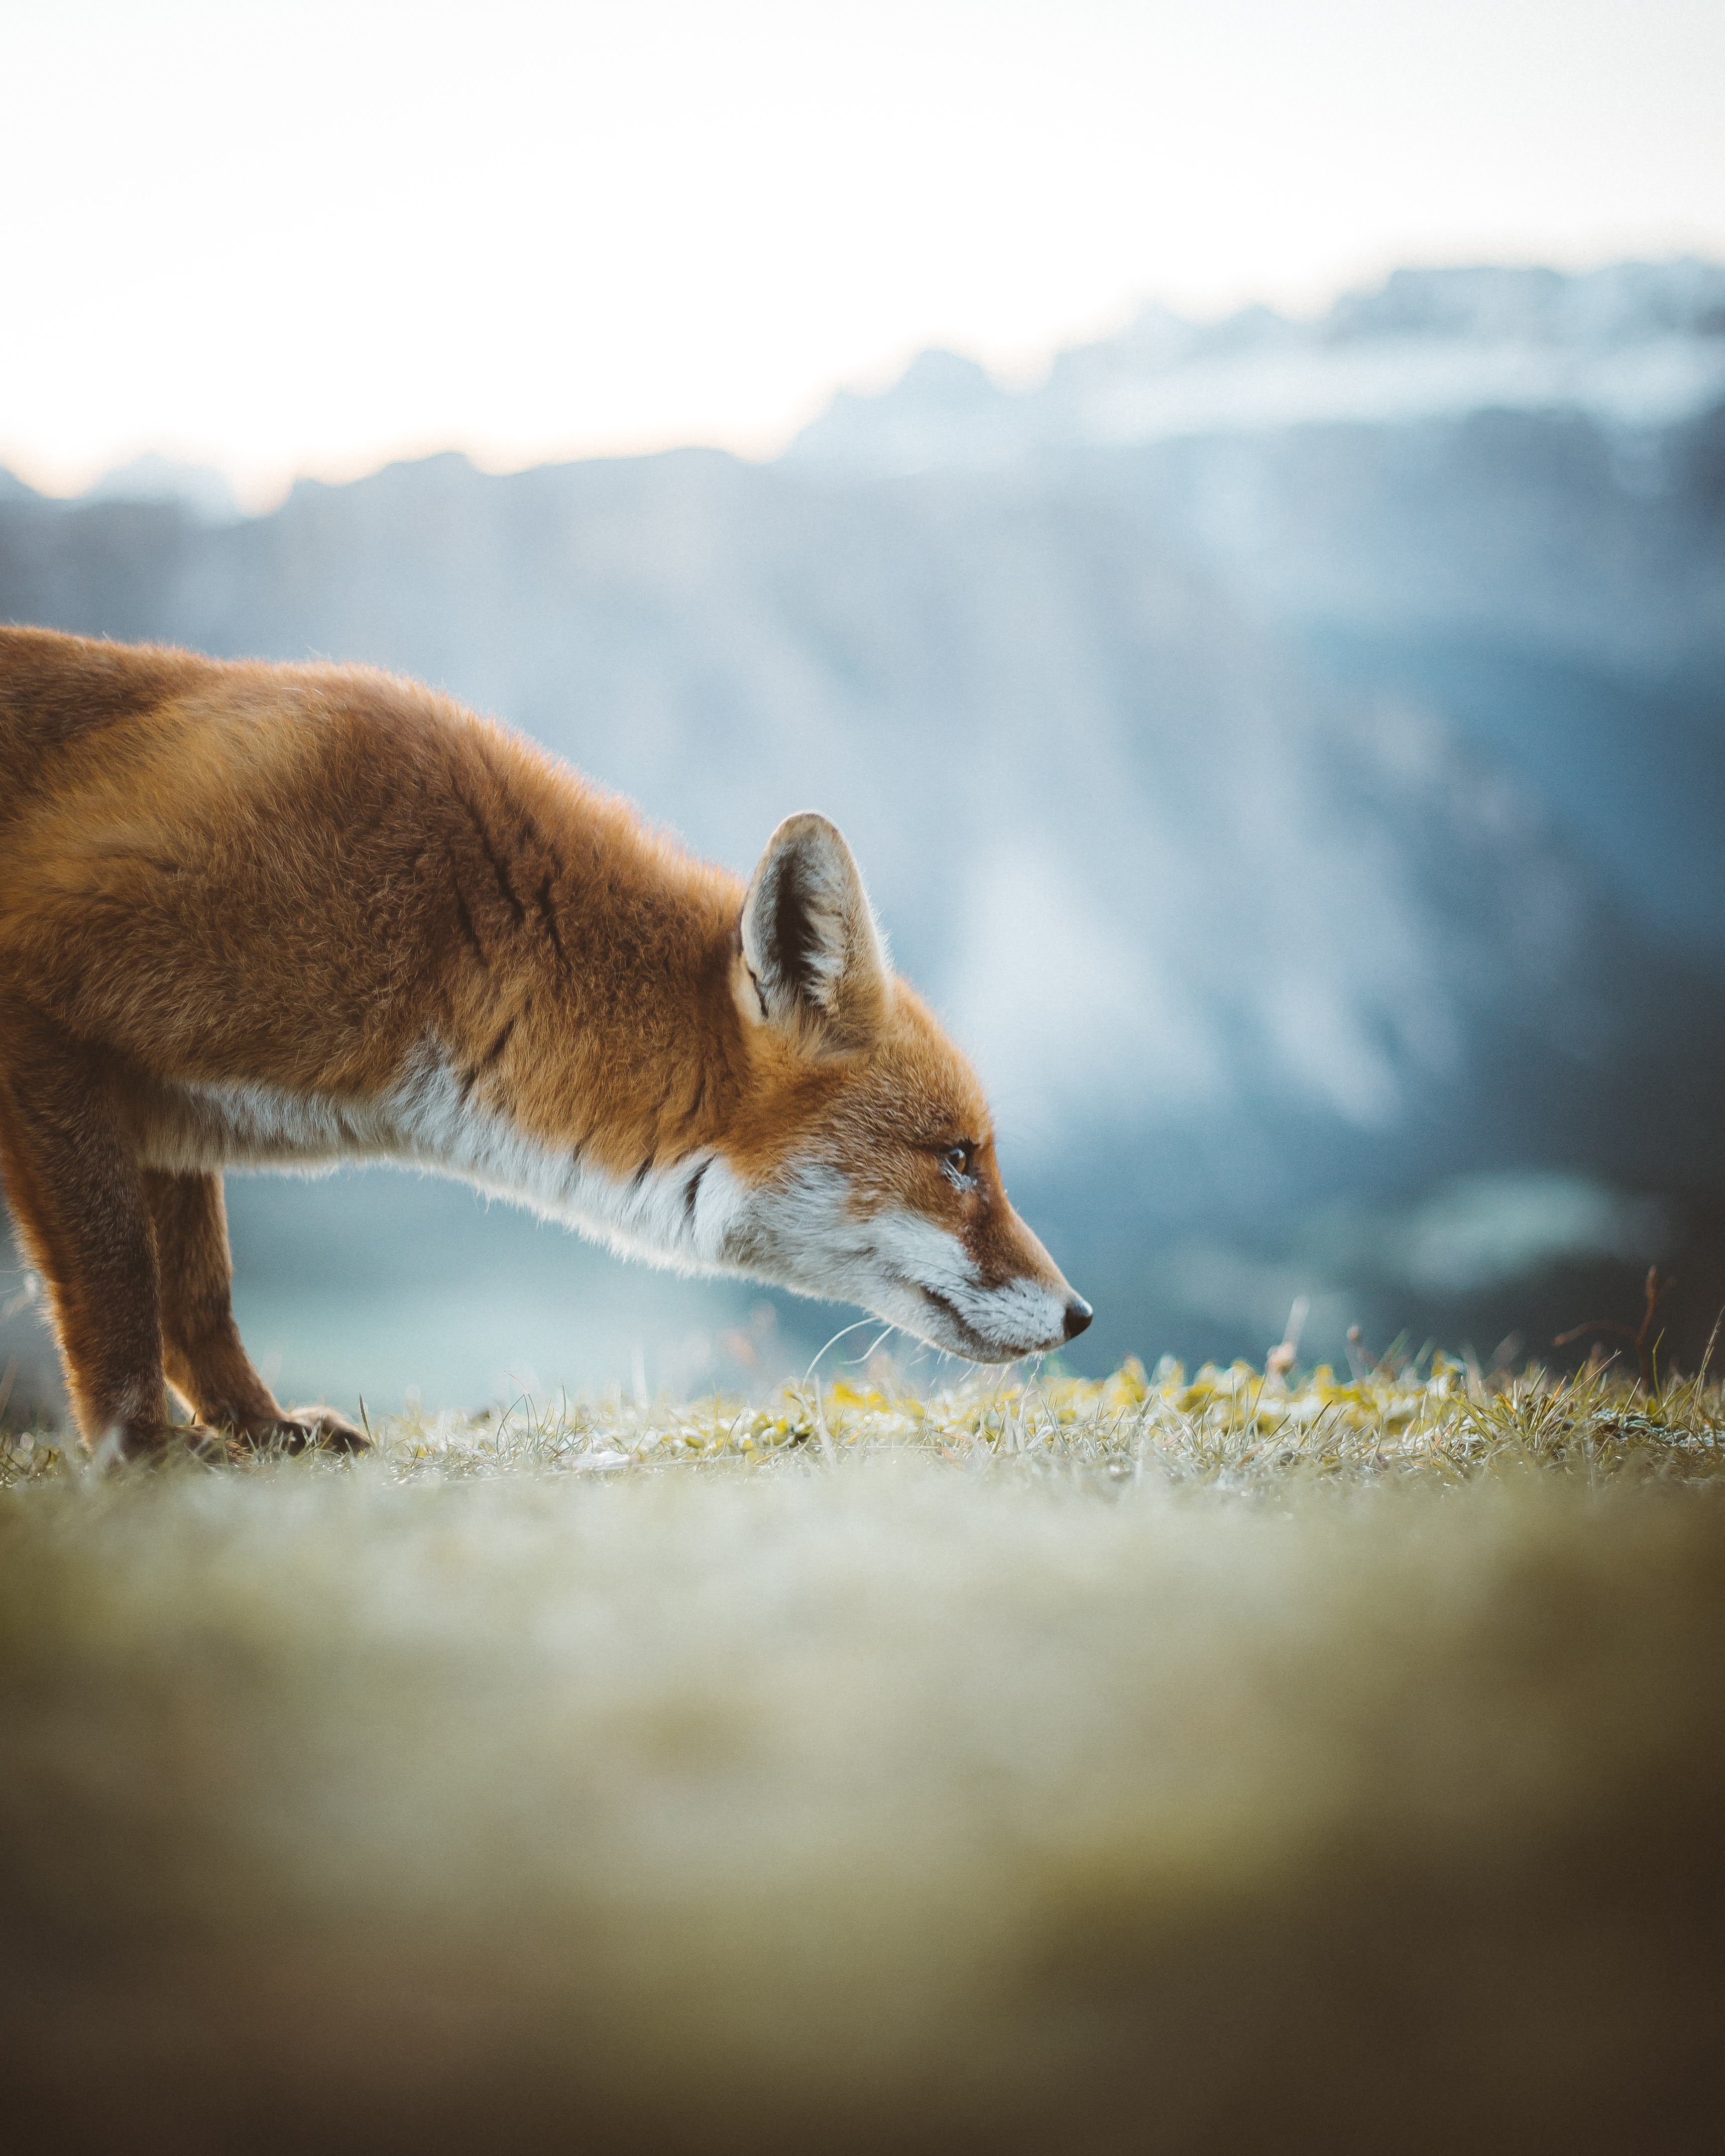 95494 Screensavers and Wallpapers Nose for phone. Download Animals, Fox, Ears, Profile, Nose pictures for free